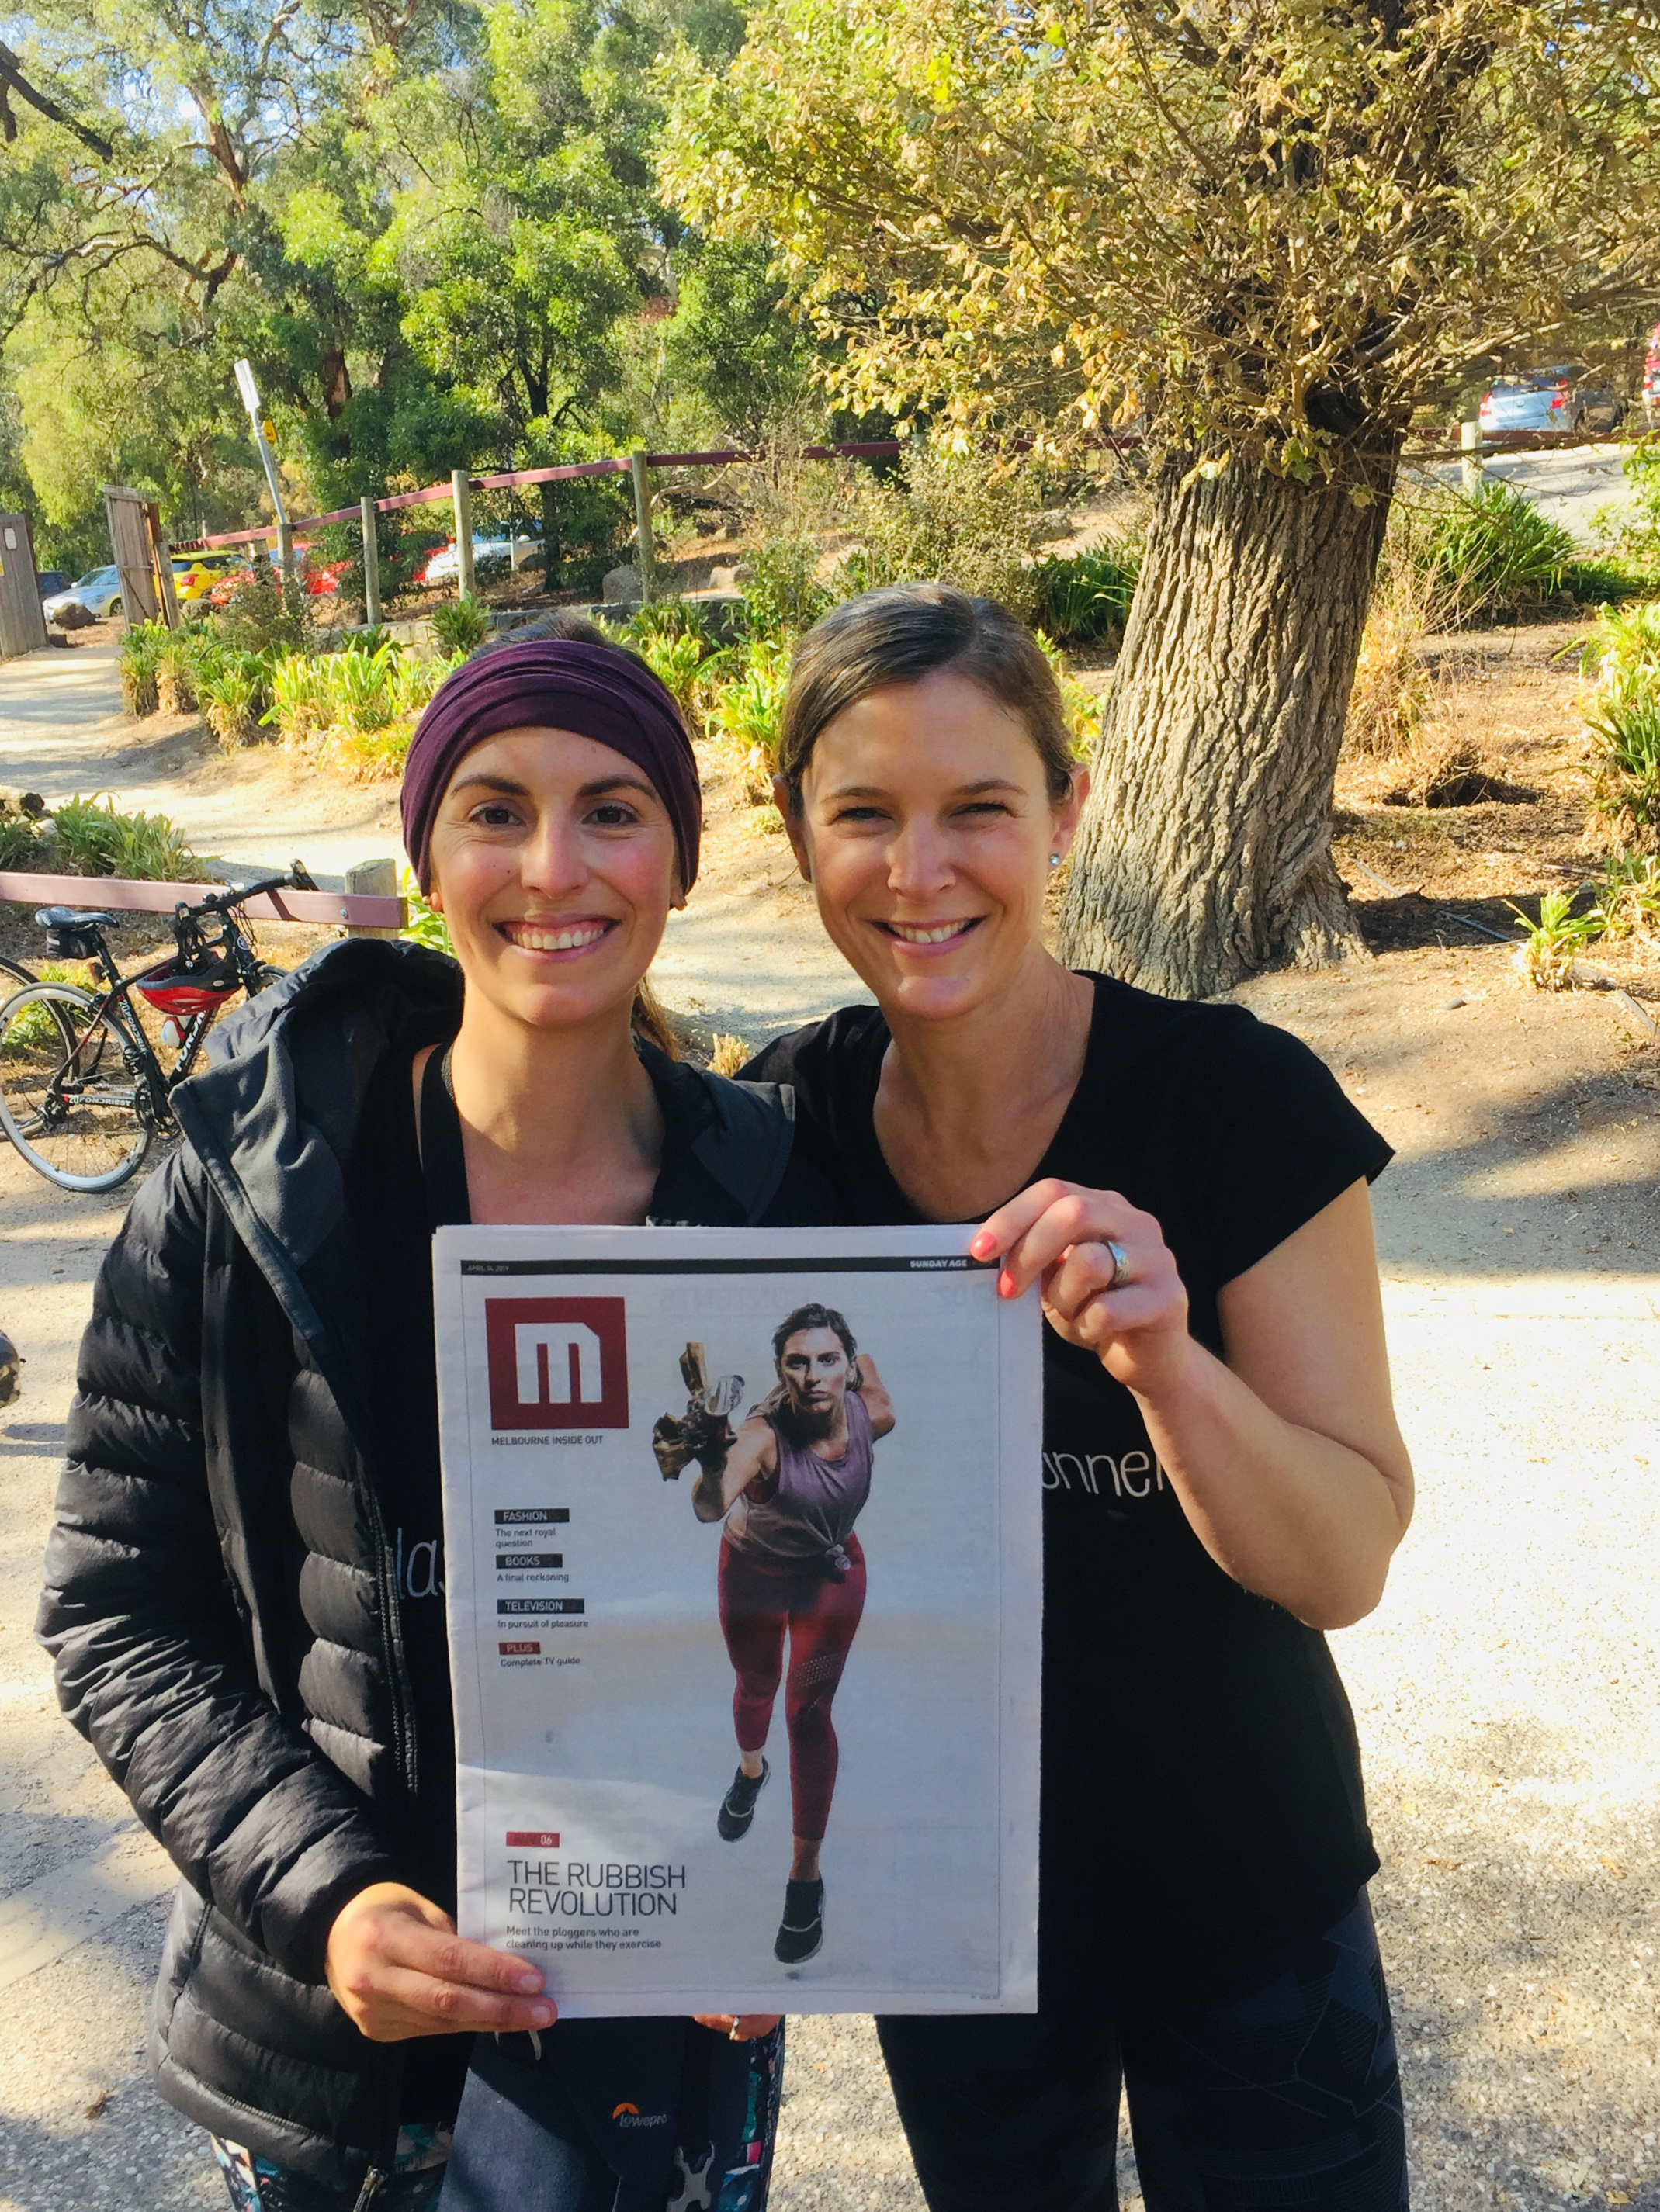 Co-Founders Karin and Debbie showing the cover of M Magazine